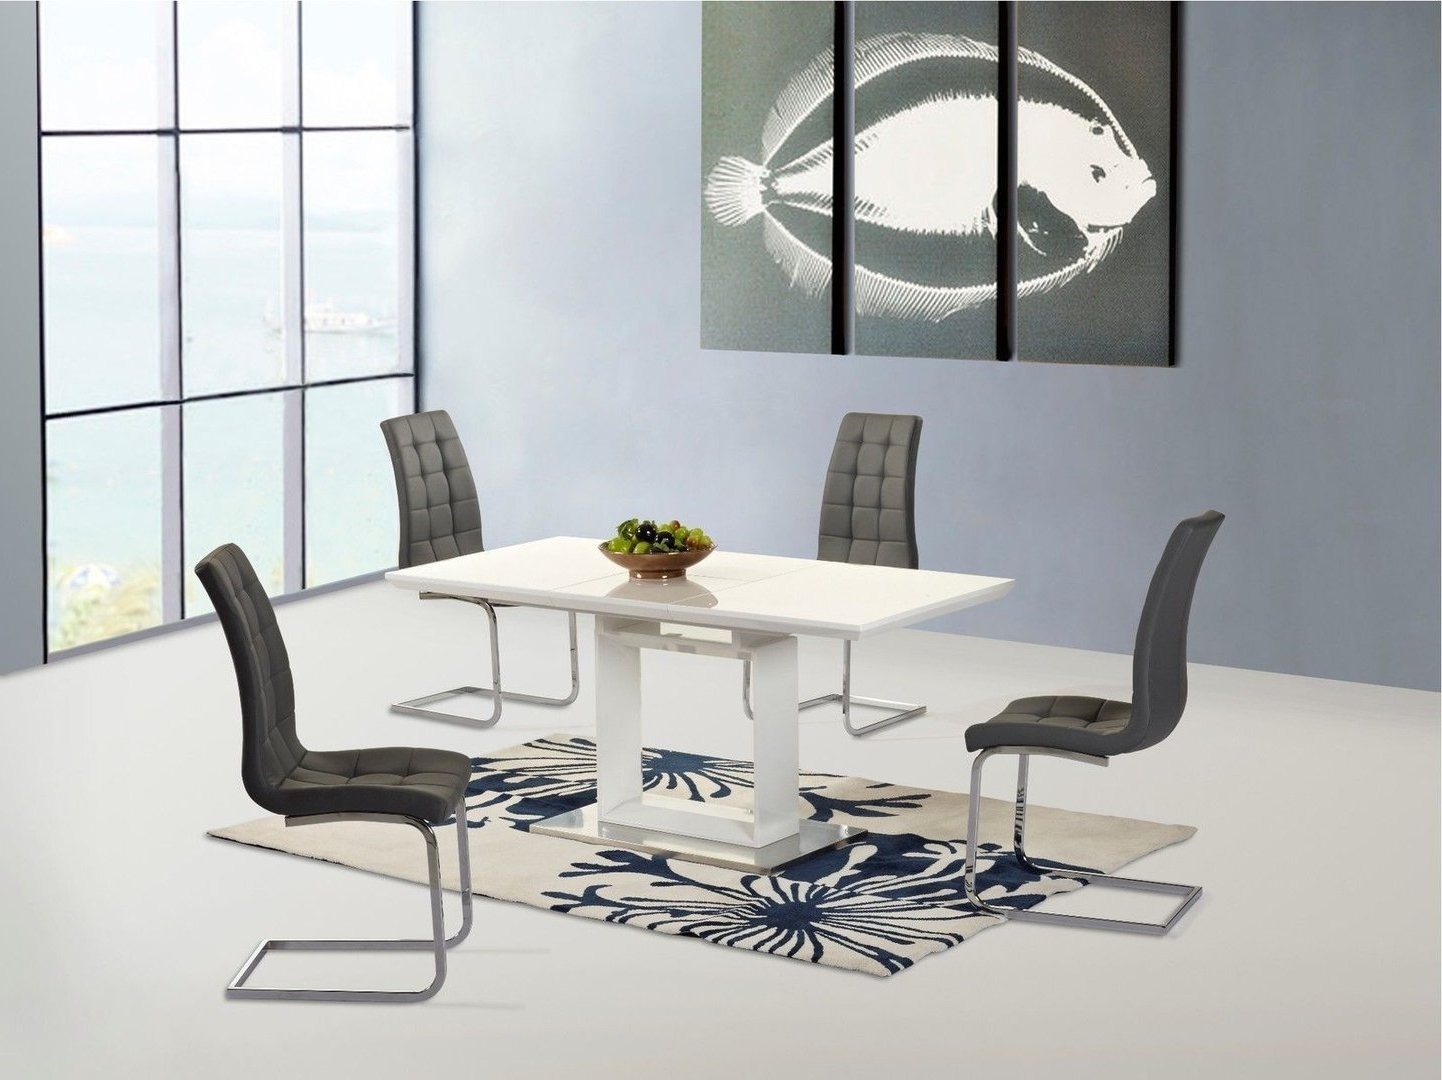 White Gloss Dining Tables 120Cm Pertaining To Latest New White High Gloss Extending Dining Table And 6 Grey Chairs (View 20 of 25)